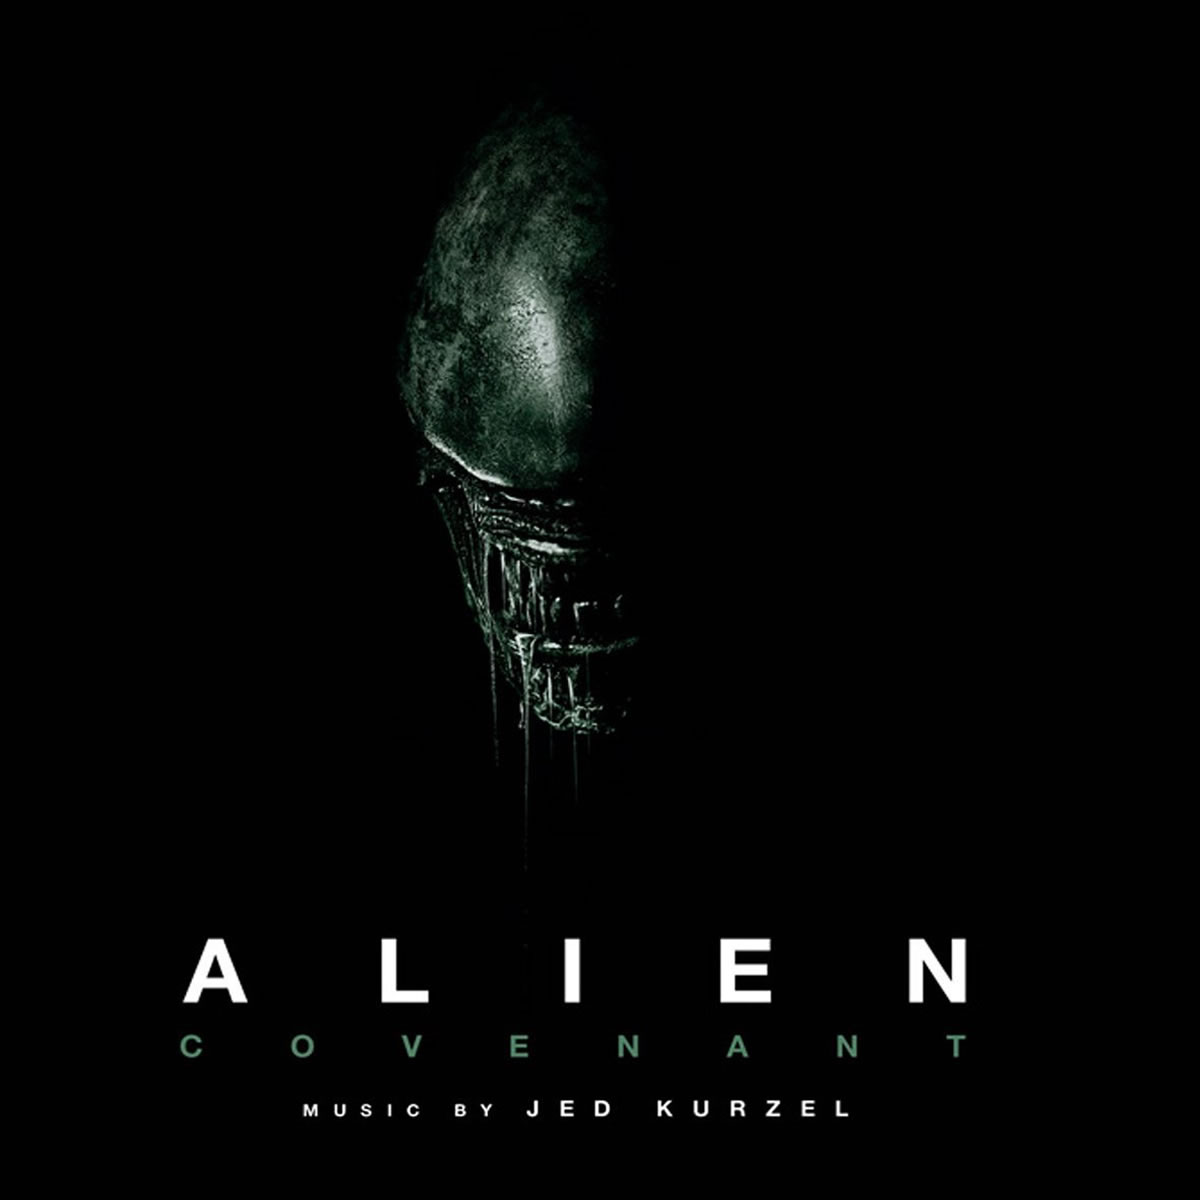 ALIEN: COVENANT - THE ORIGINAL MOTION PICTURE SOUNDTRACK (AUDIO CD)